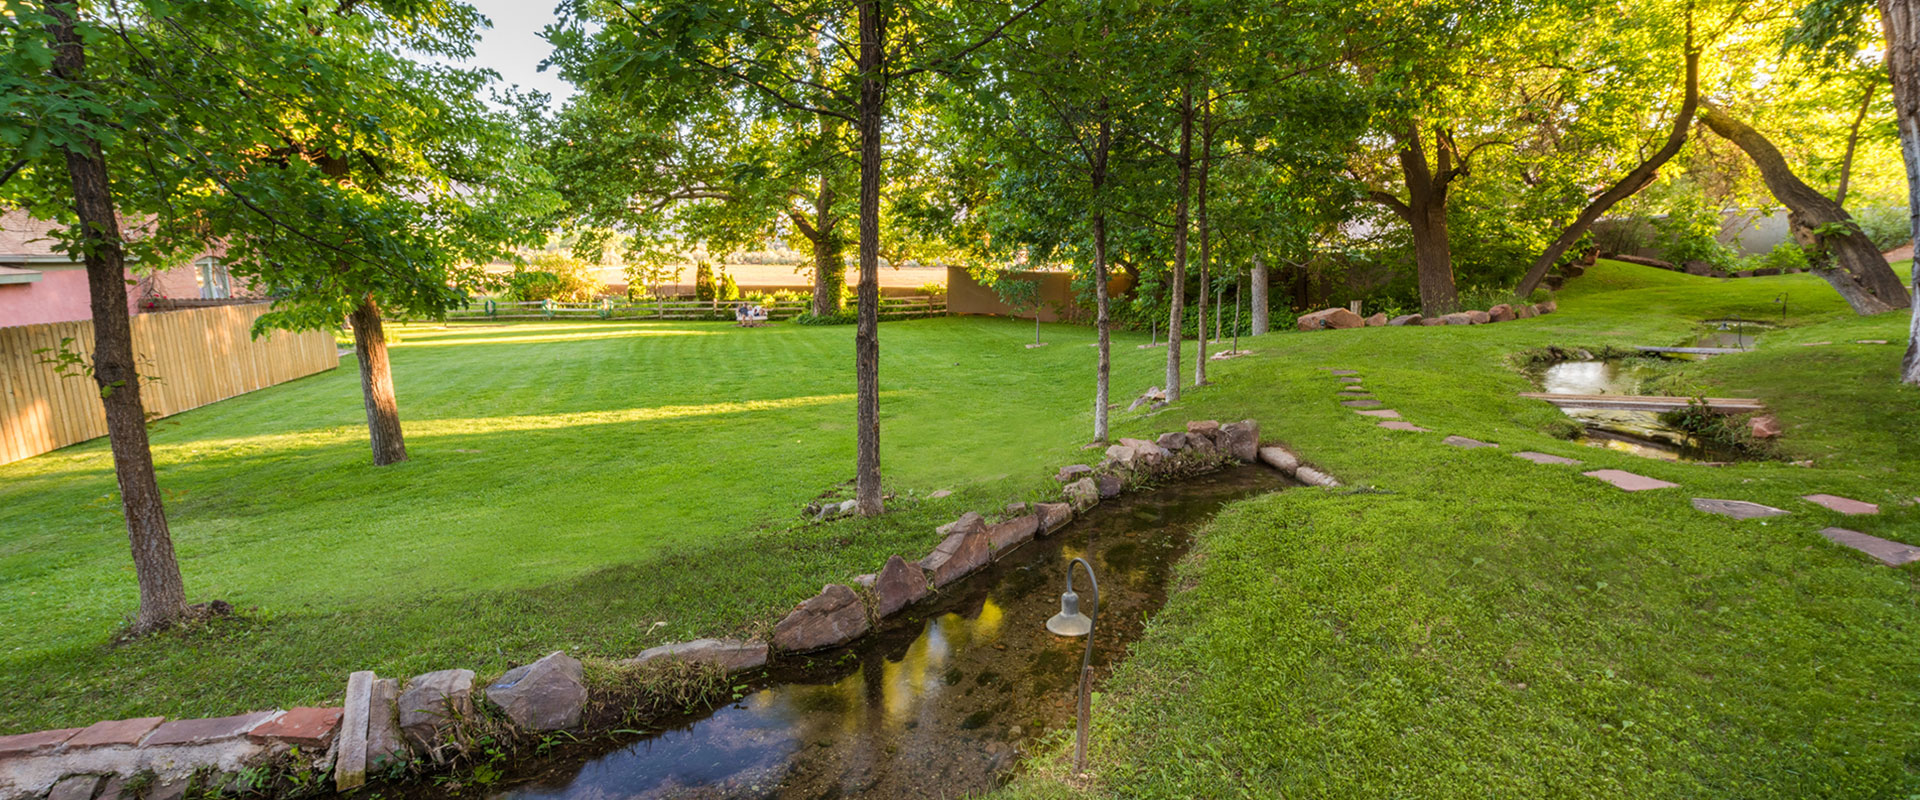 An older male guest, wearing a straw hat, is leaning against a newly painted bright turquoise pick up truck at Moab Springs Ranch in Utah.